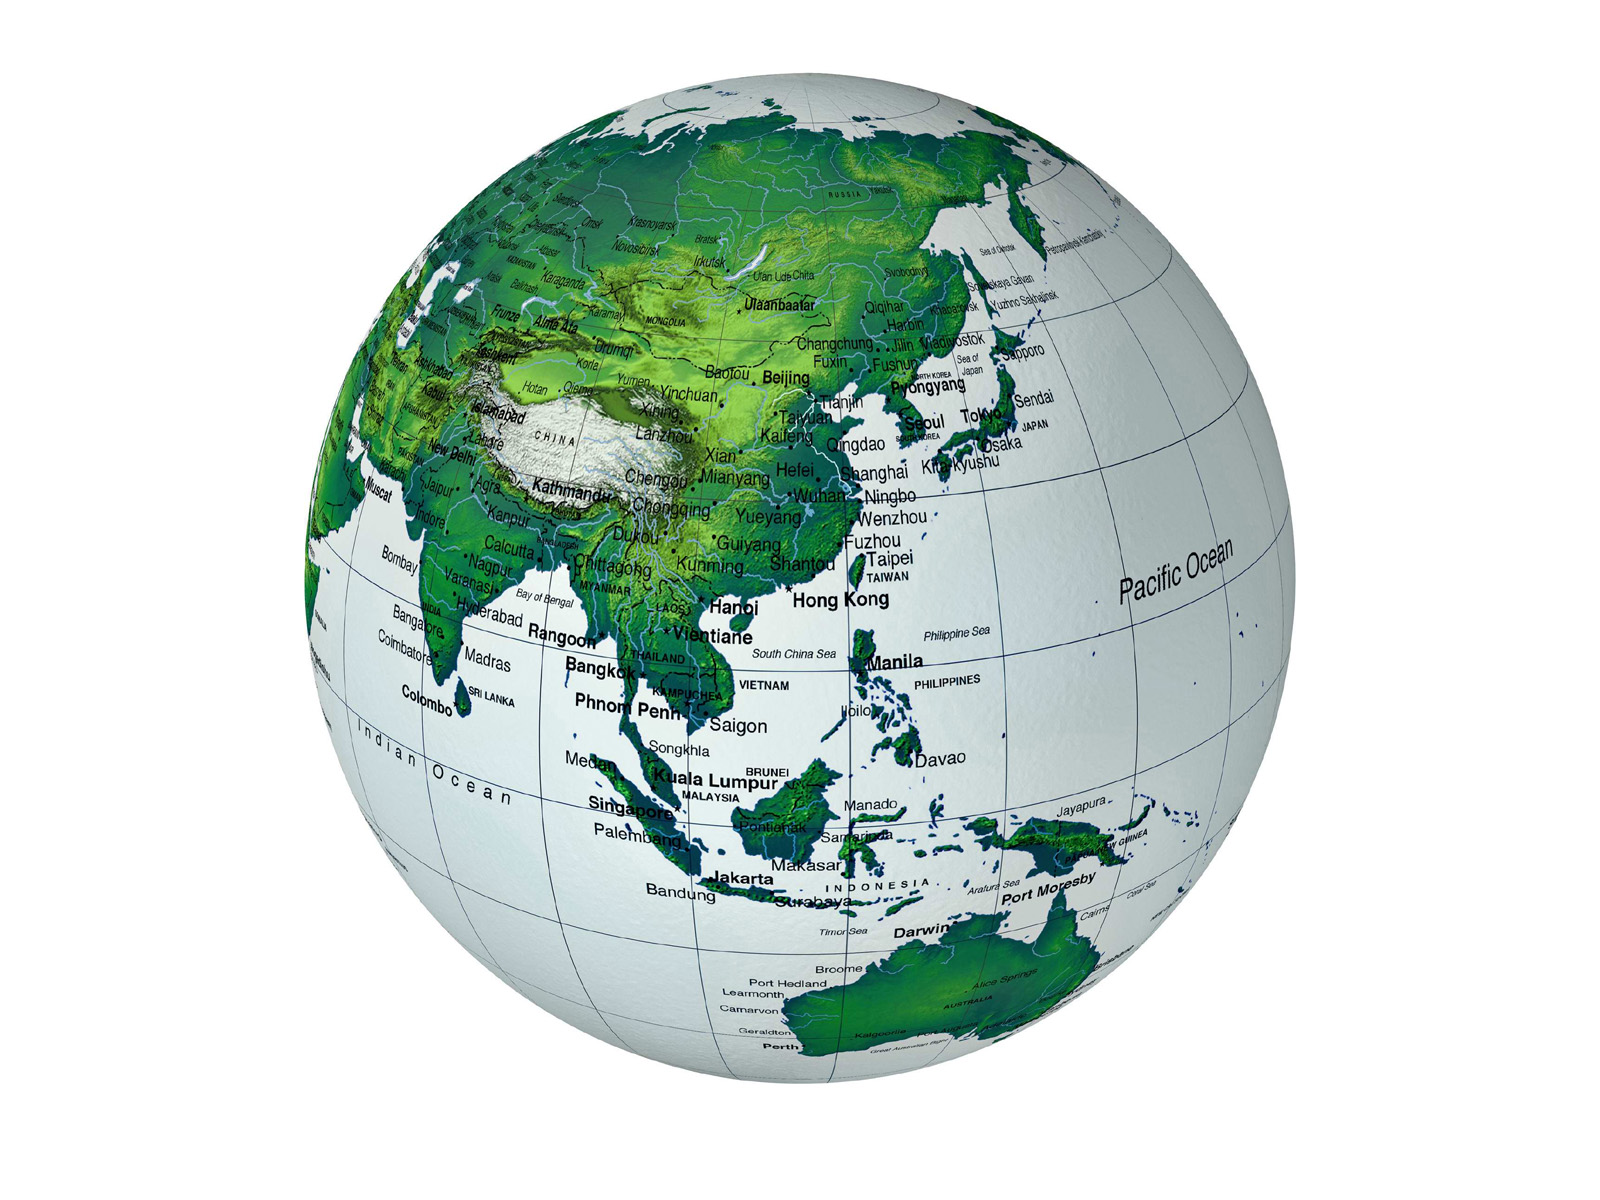 Image Globe Peta Dunia 1 Asia Tenggara Indonesia Download 1600x1200